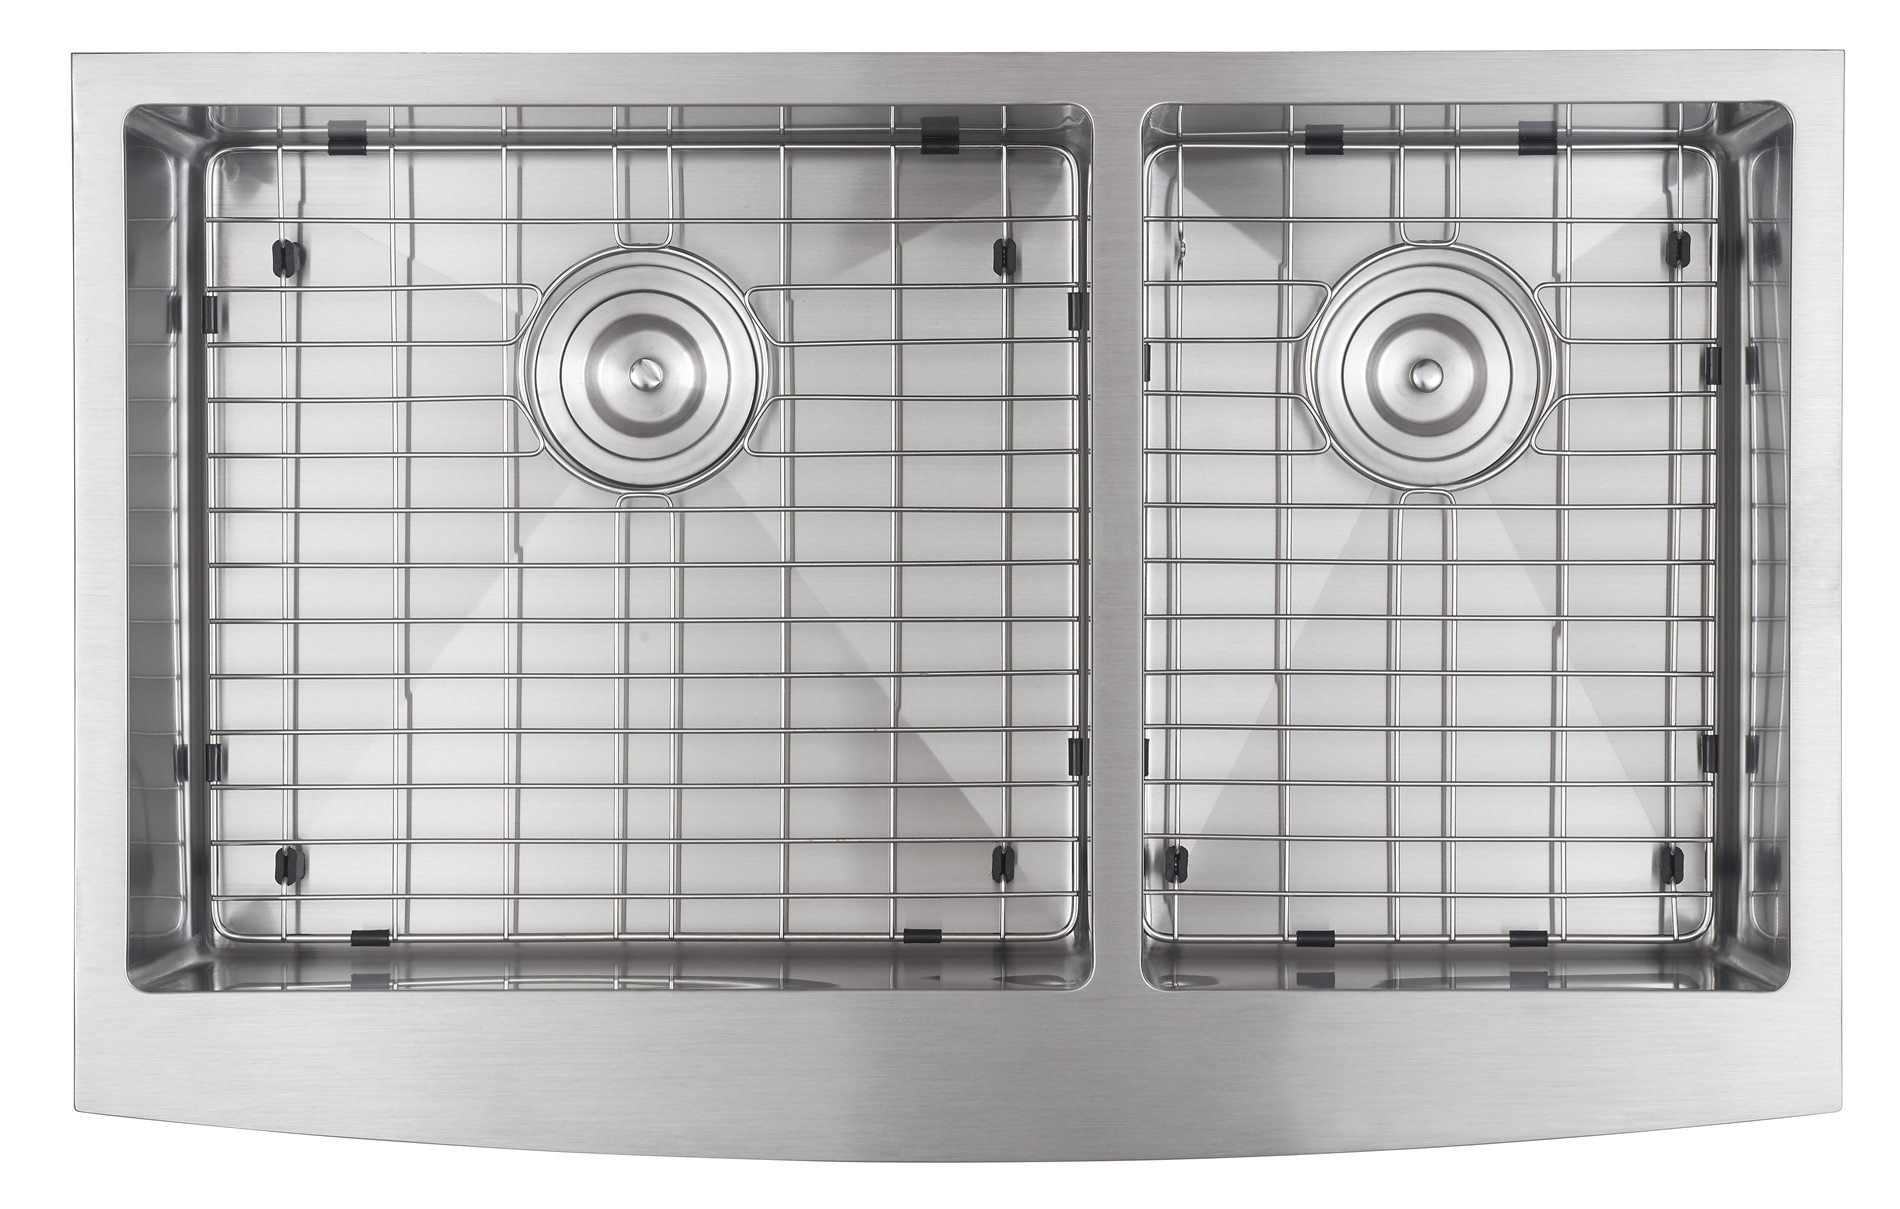 33x21 Inch Farmhouse Apron 60/40 Deep Double Bowl 16 Gauge Stainless Steel Luxury Kitchen Sink SuperSuper by SuperSuper (Image #2)